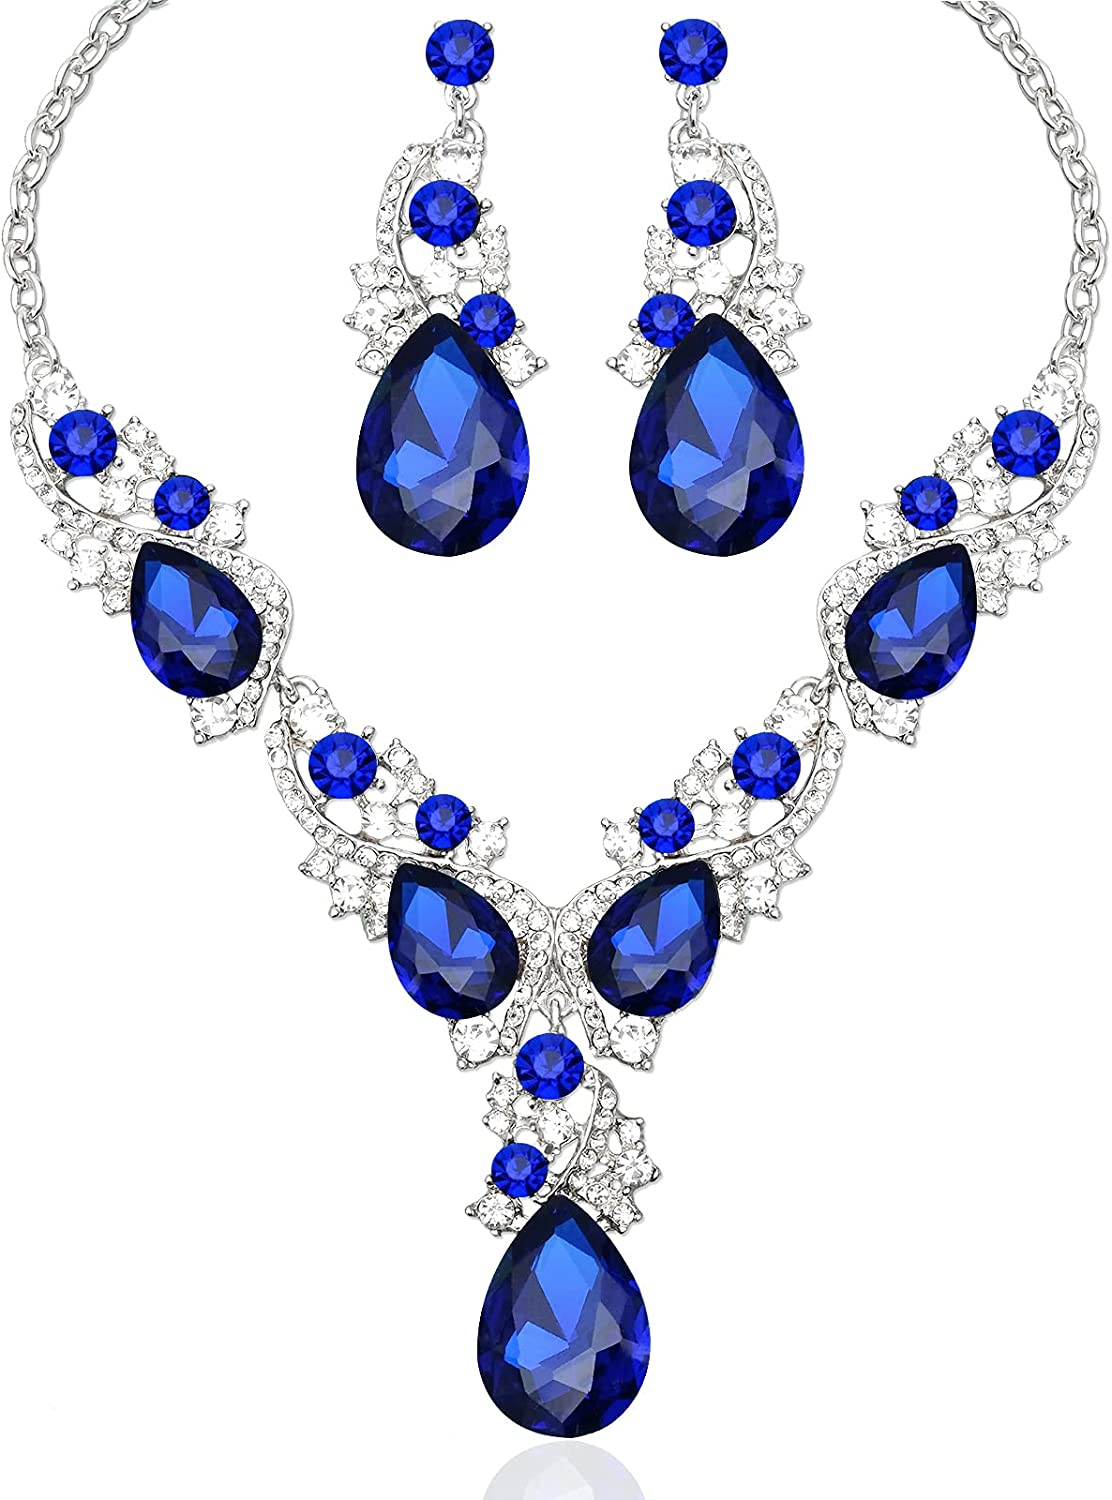 Aixiao Elegant Women's Statement Necklace Earrings for Wedding Party Bridal Teardrop Crystal Brides Costume Jewelry Sets